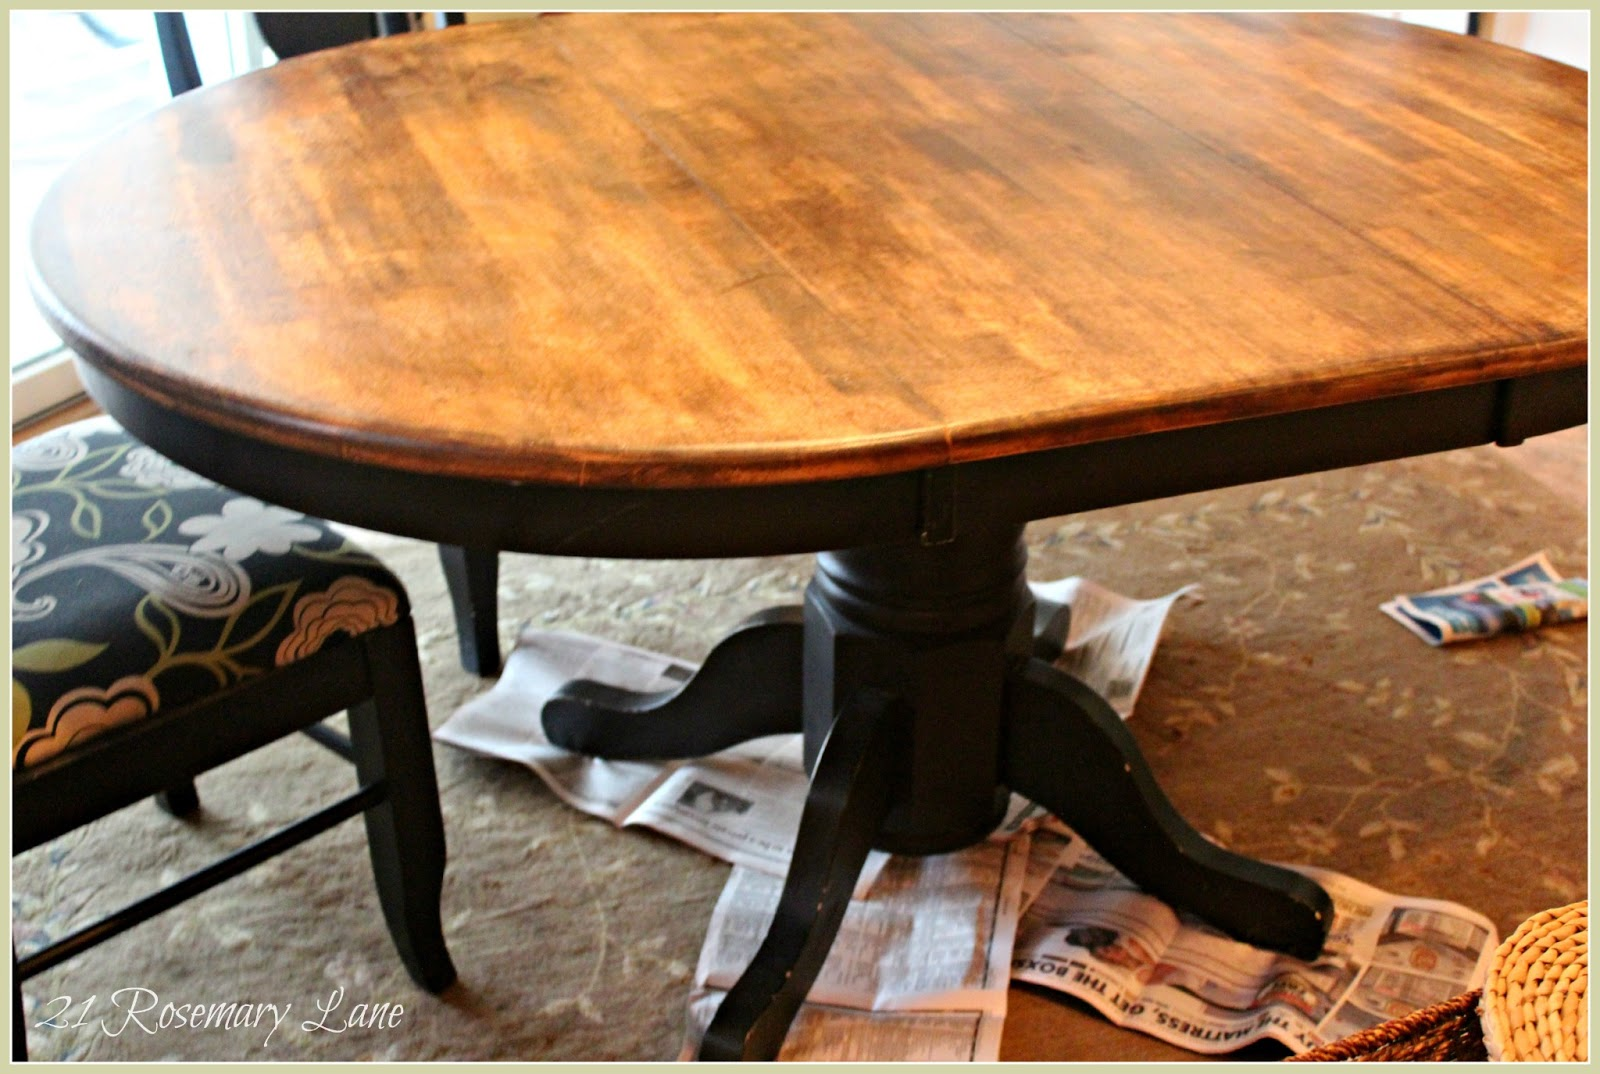 21 rosemary lane freshened up kitchen table and chairs. Black Bedroom Furniture Sets. Home Design Ideas